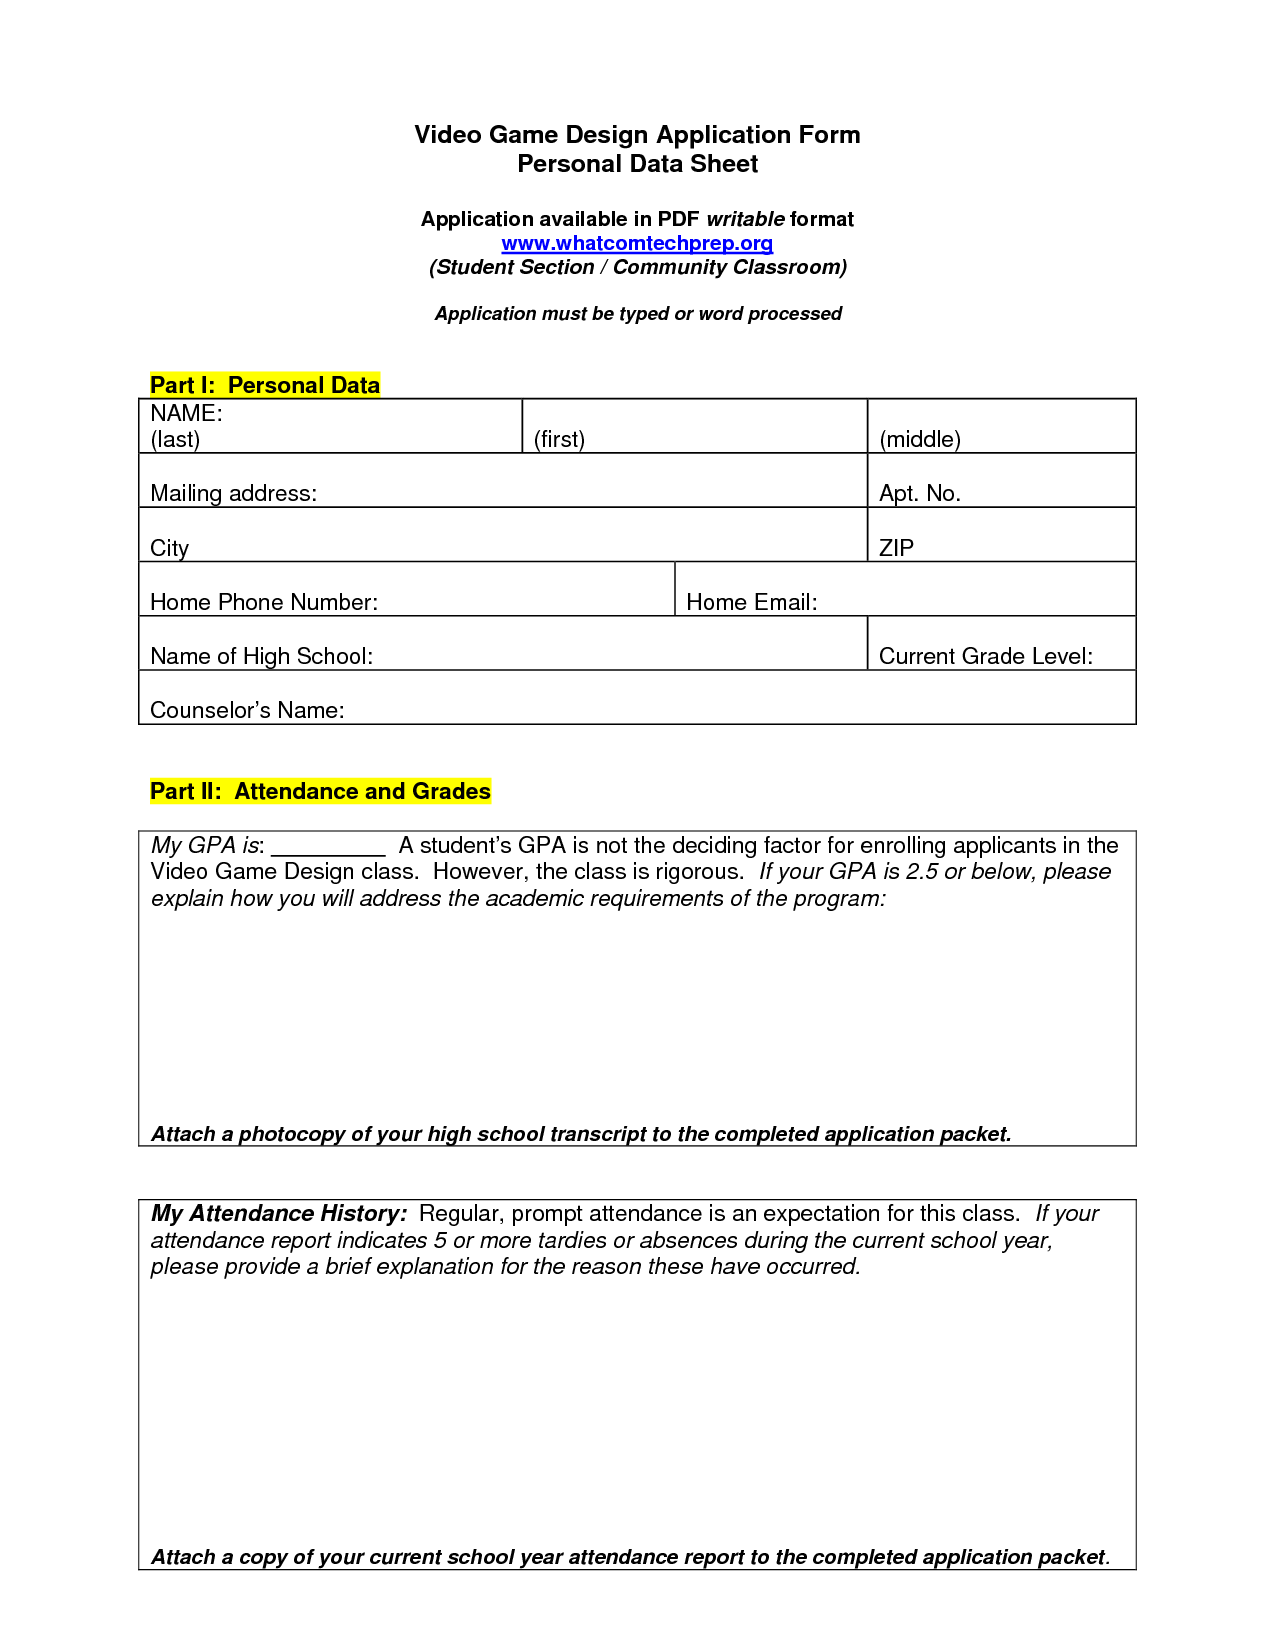 game designer job application form - Google Search | job application on walmart application form, wells fargo bank application form, barclaycard application form, capital one application form, surveymonkey application form, apple store application form,